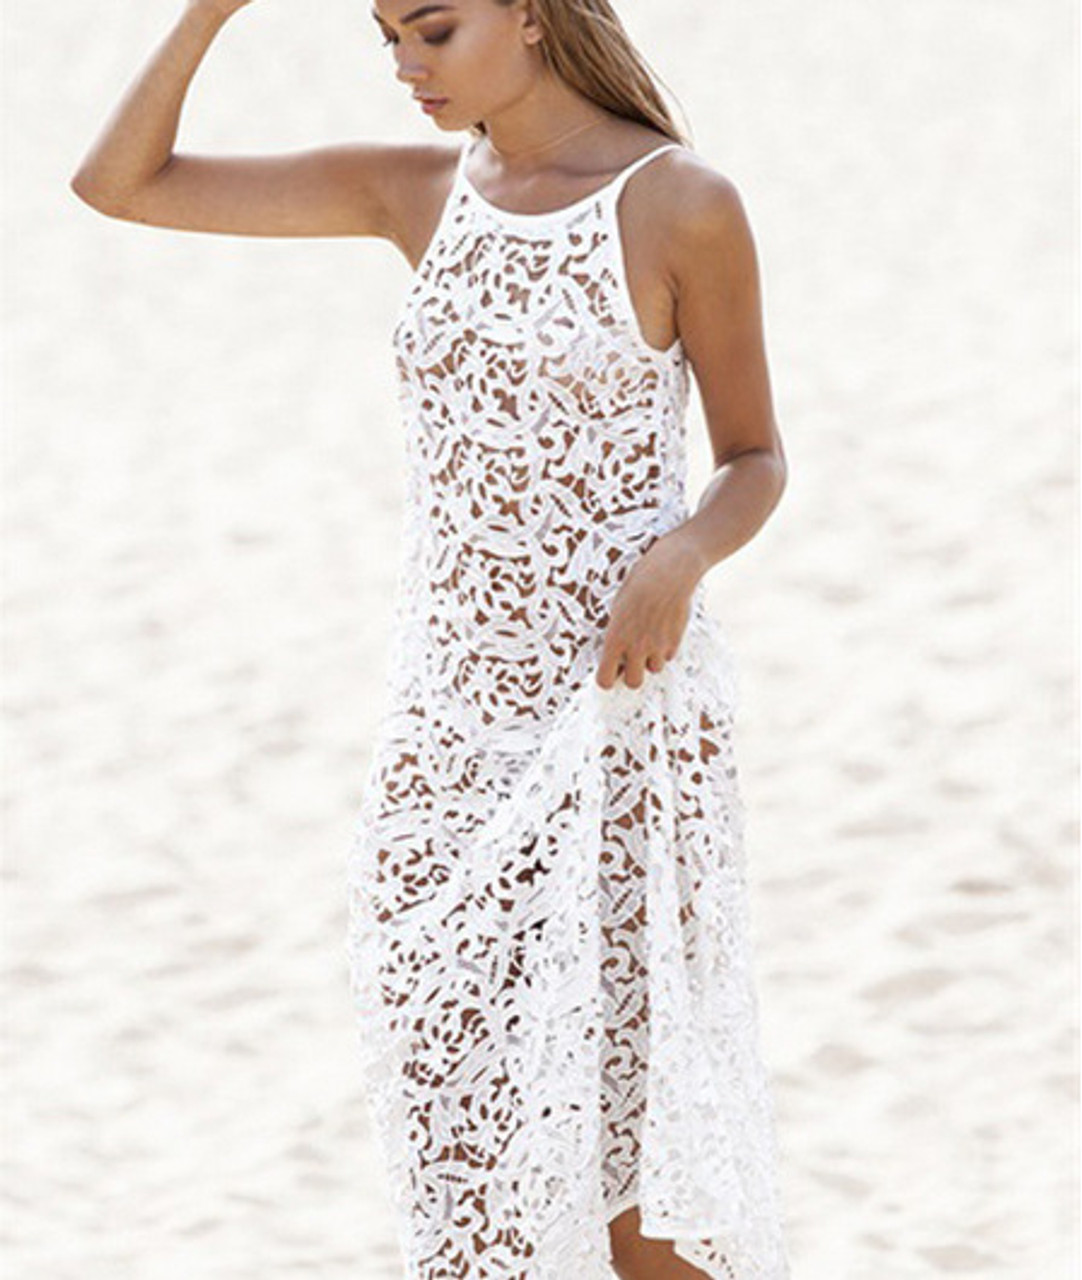 5ef1f312f16694 Hollow Out White Lace Beach Cover Up Dress - psfashiontrend